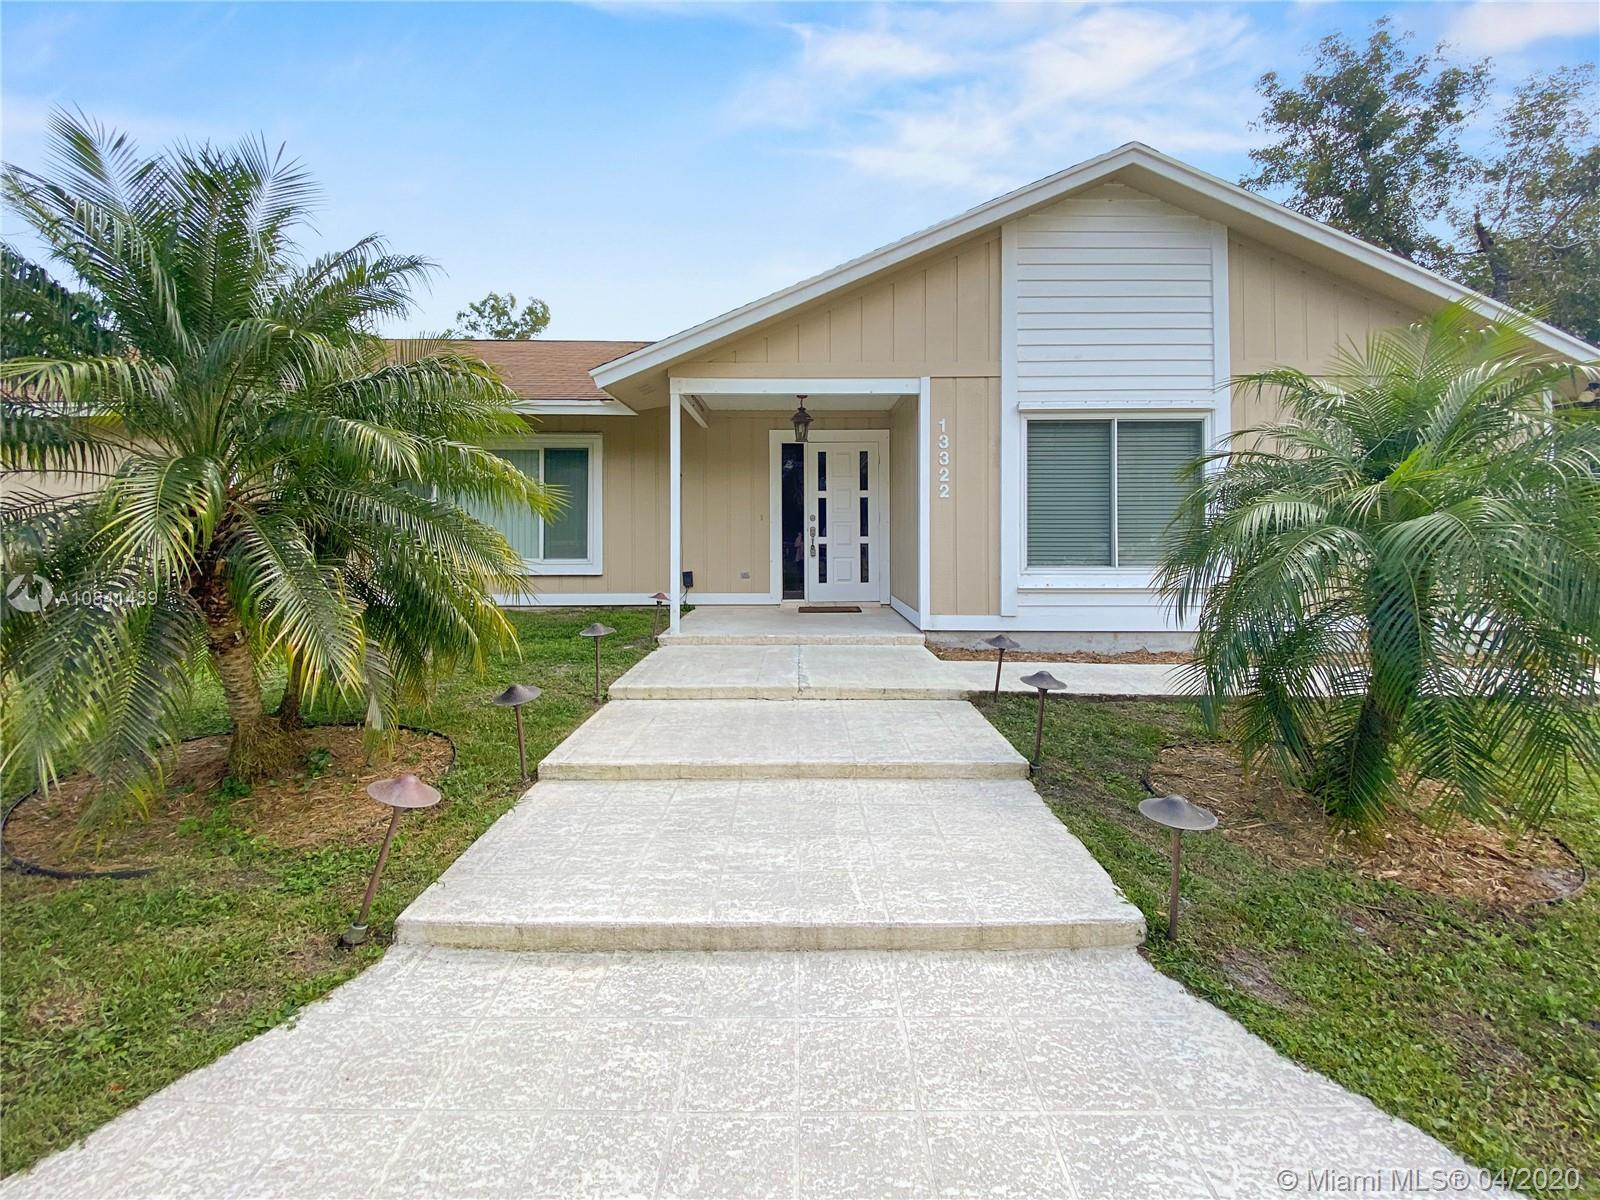 Jupiter Farms 3 Bedroom 2 Bath, Split Plan Pool Home. This property has a 4 Stall Barn with an Air C